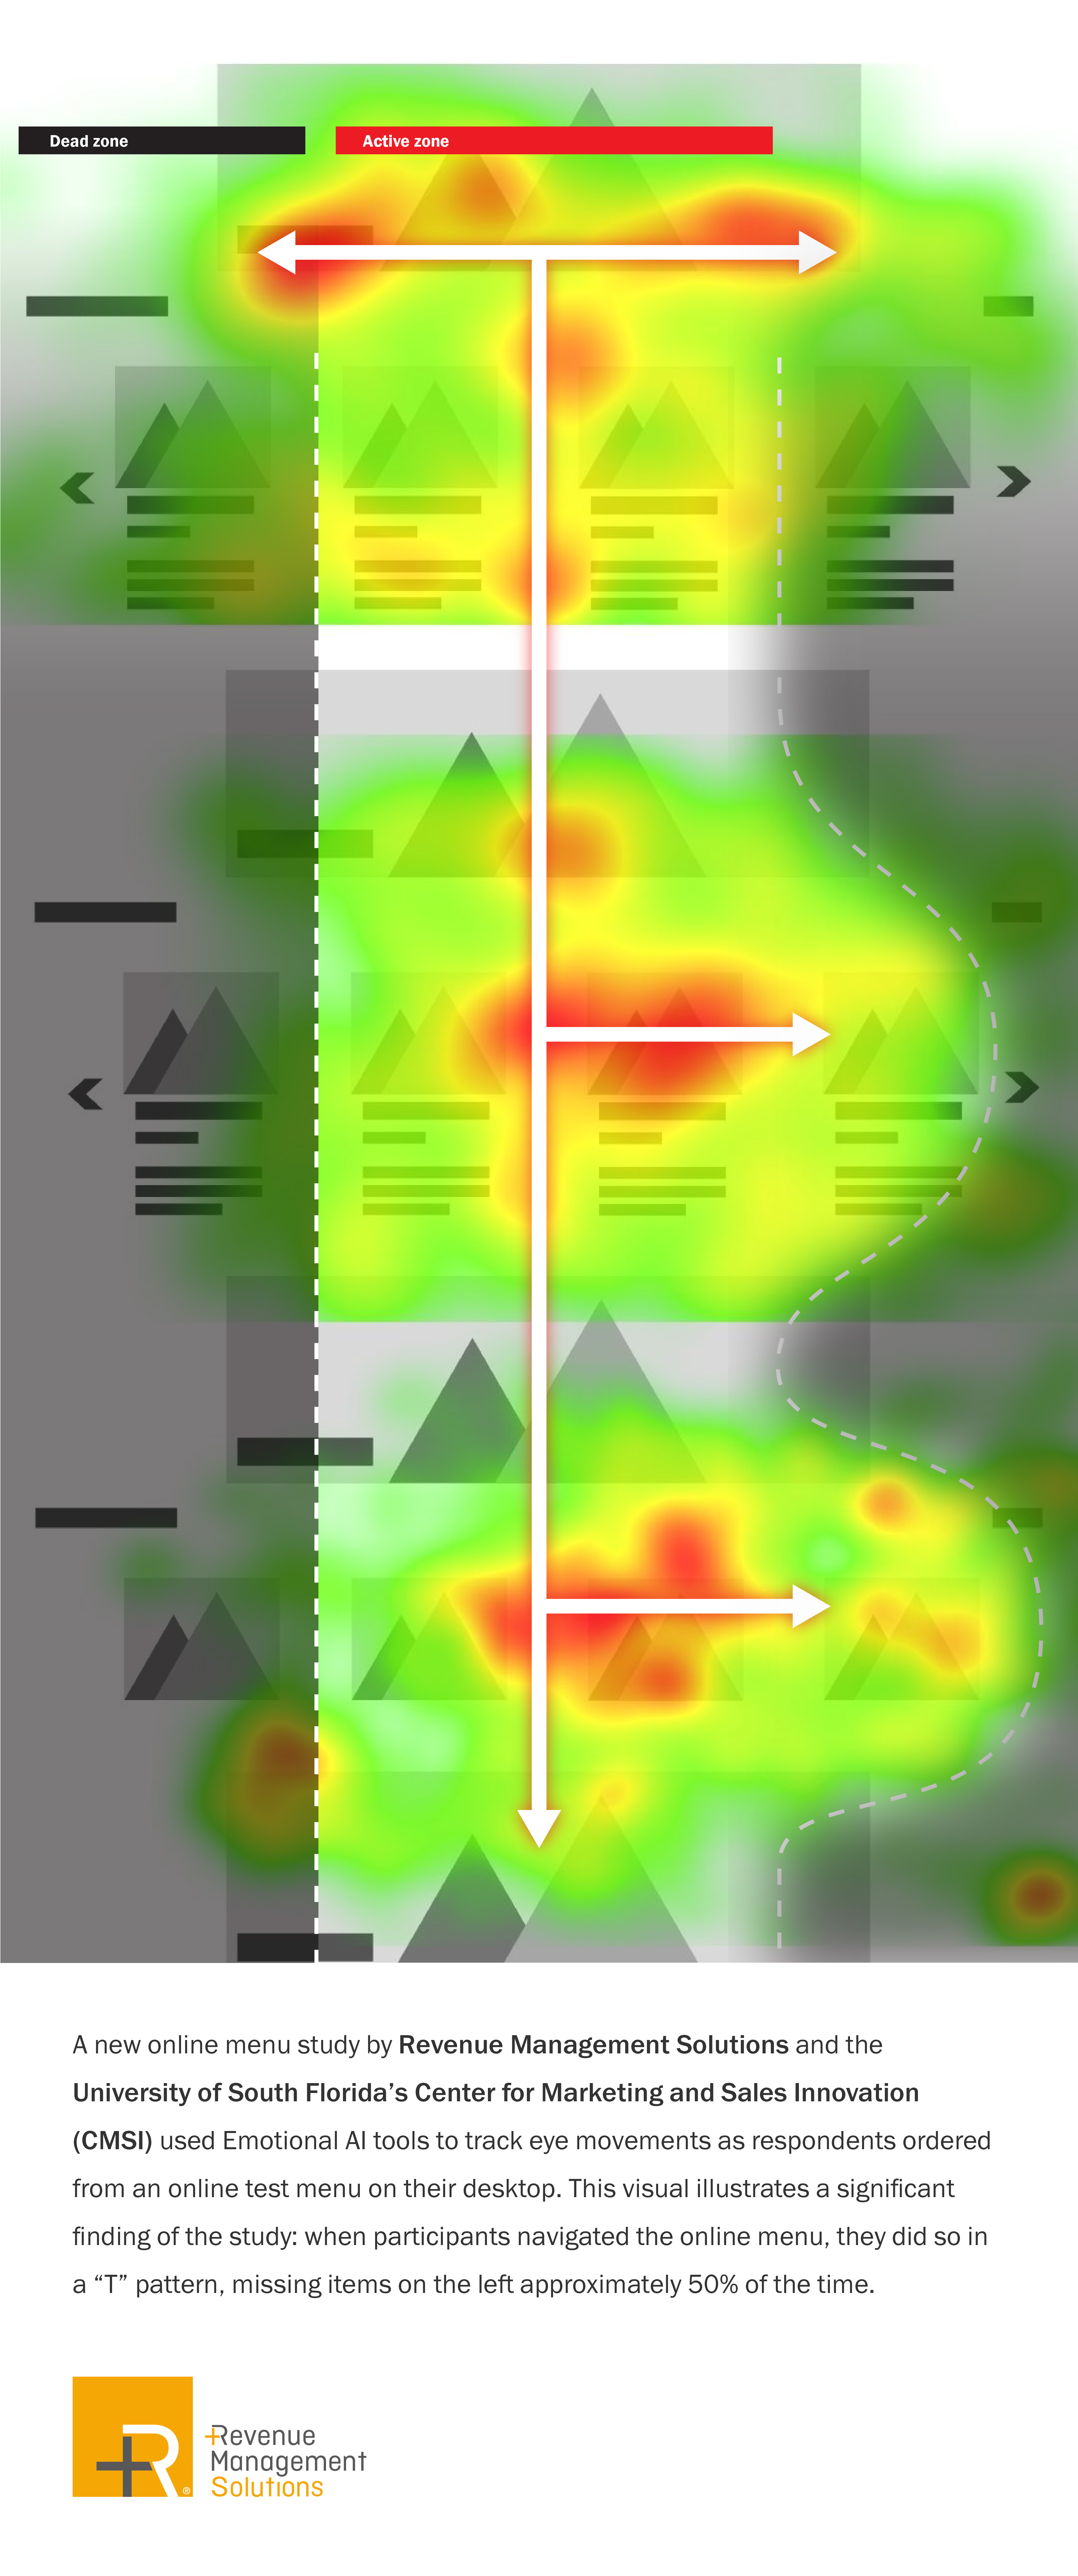 Heatmap from a first ever online study by Revenue Management Solutions and the University of South Florida's Center for Marketing and Sales Innovation (CMSI) that evaluated online ordering behavior.